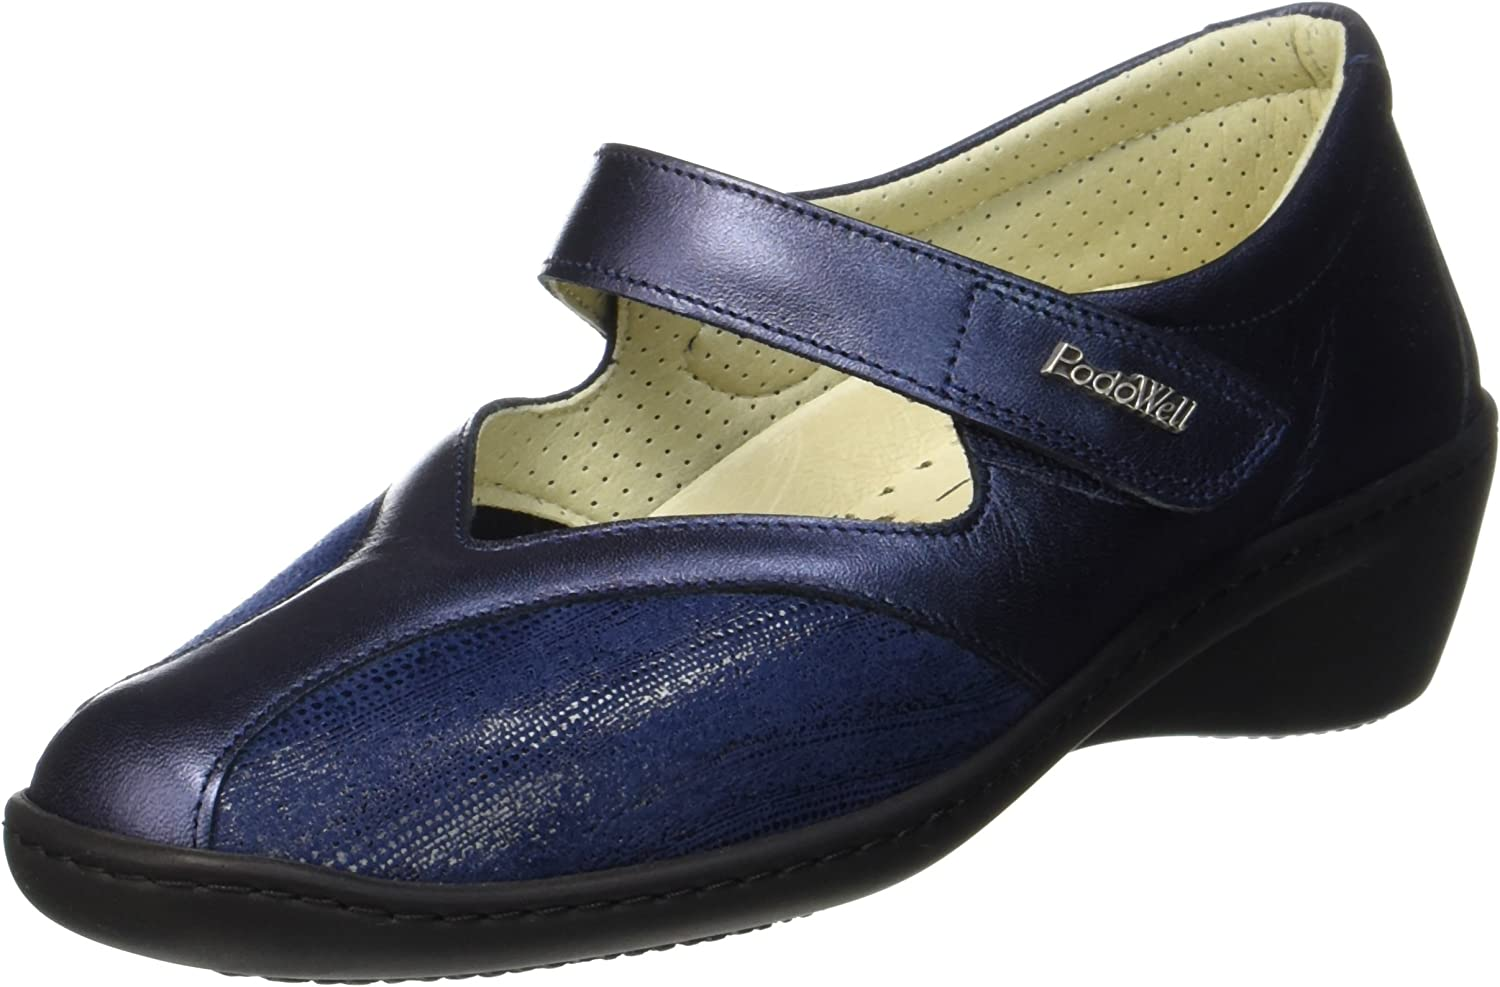 PodoWell Unisex Adults Stadia Loafers